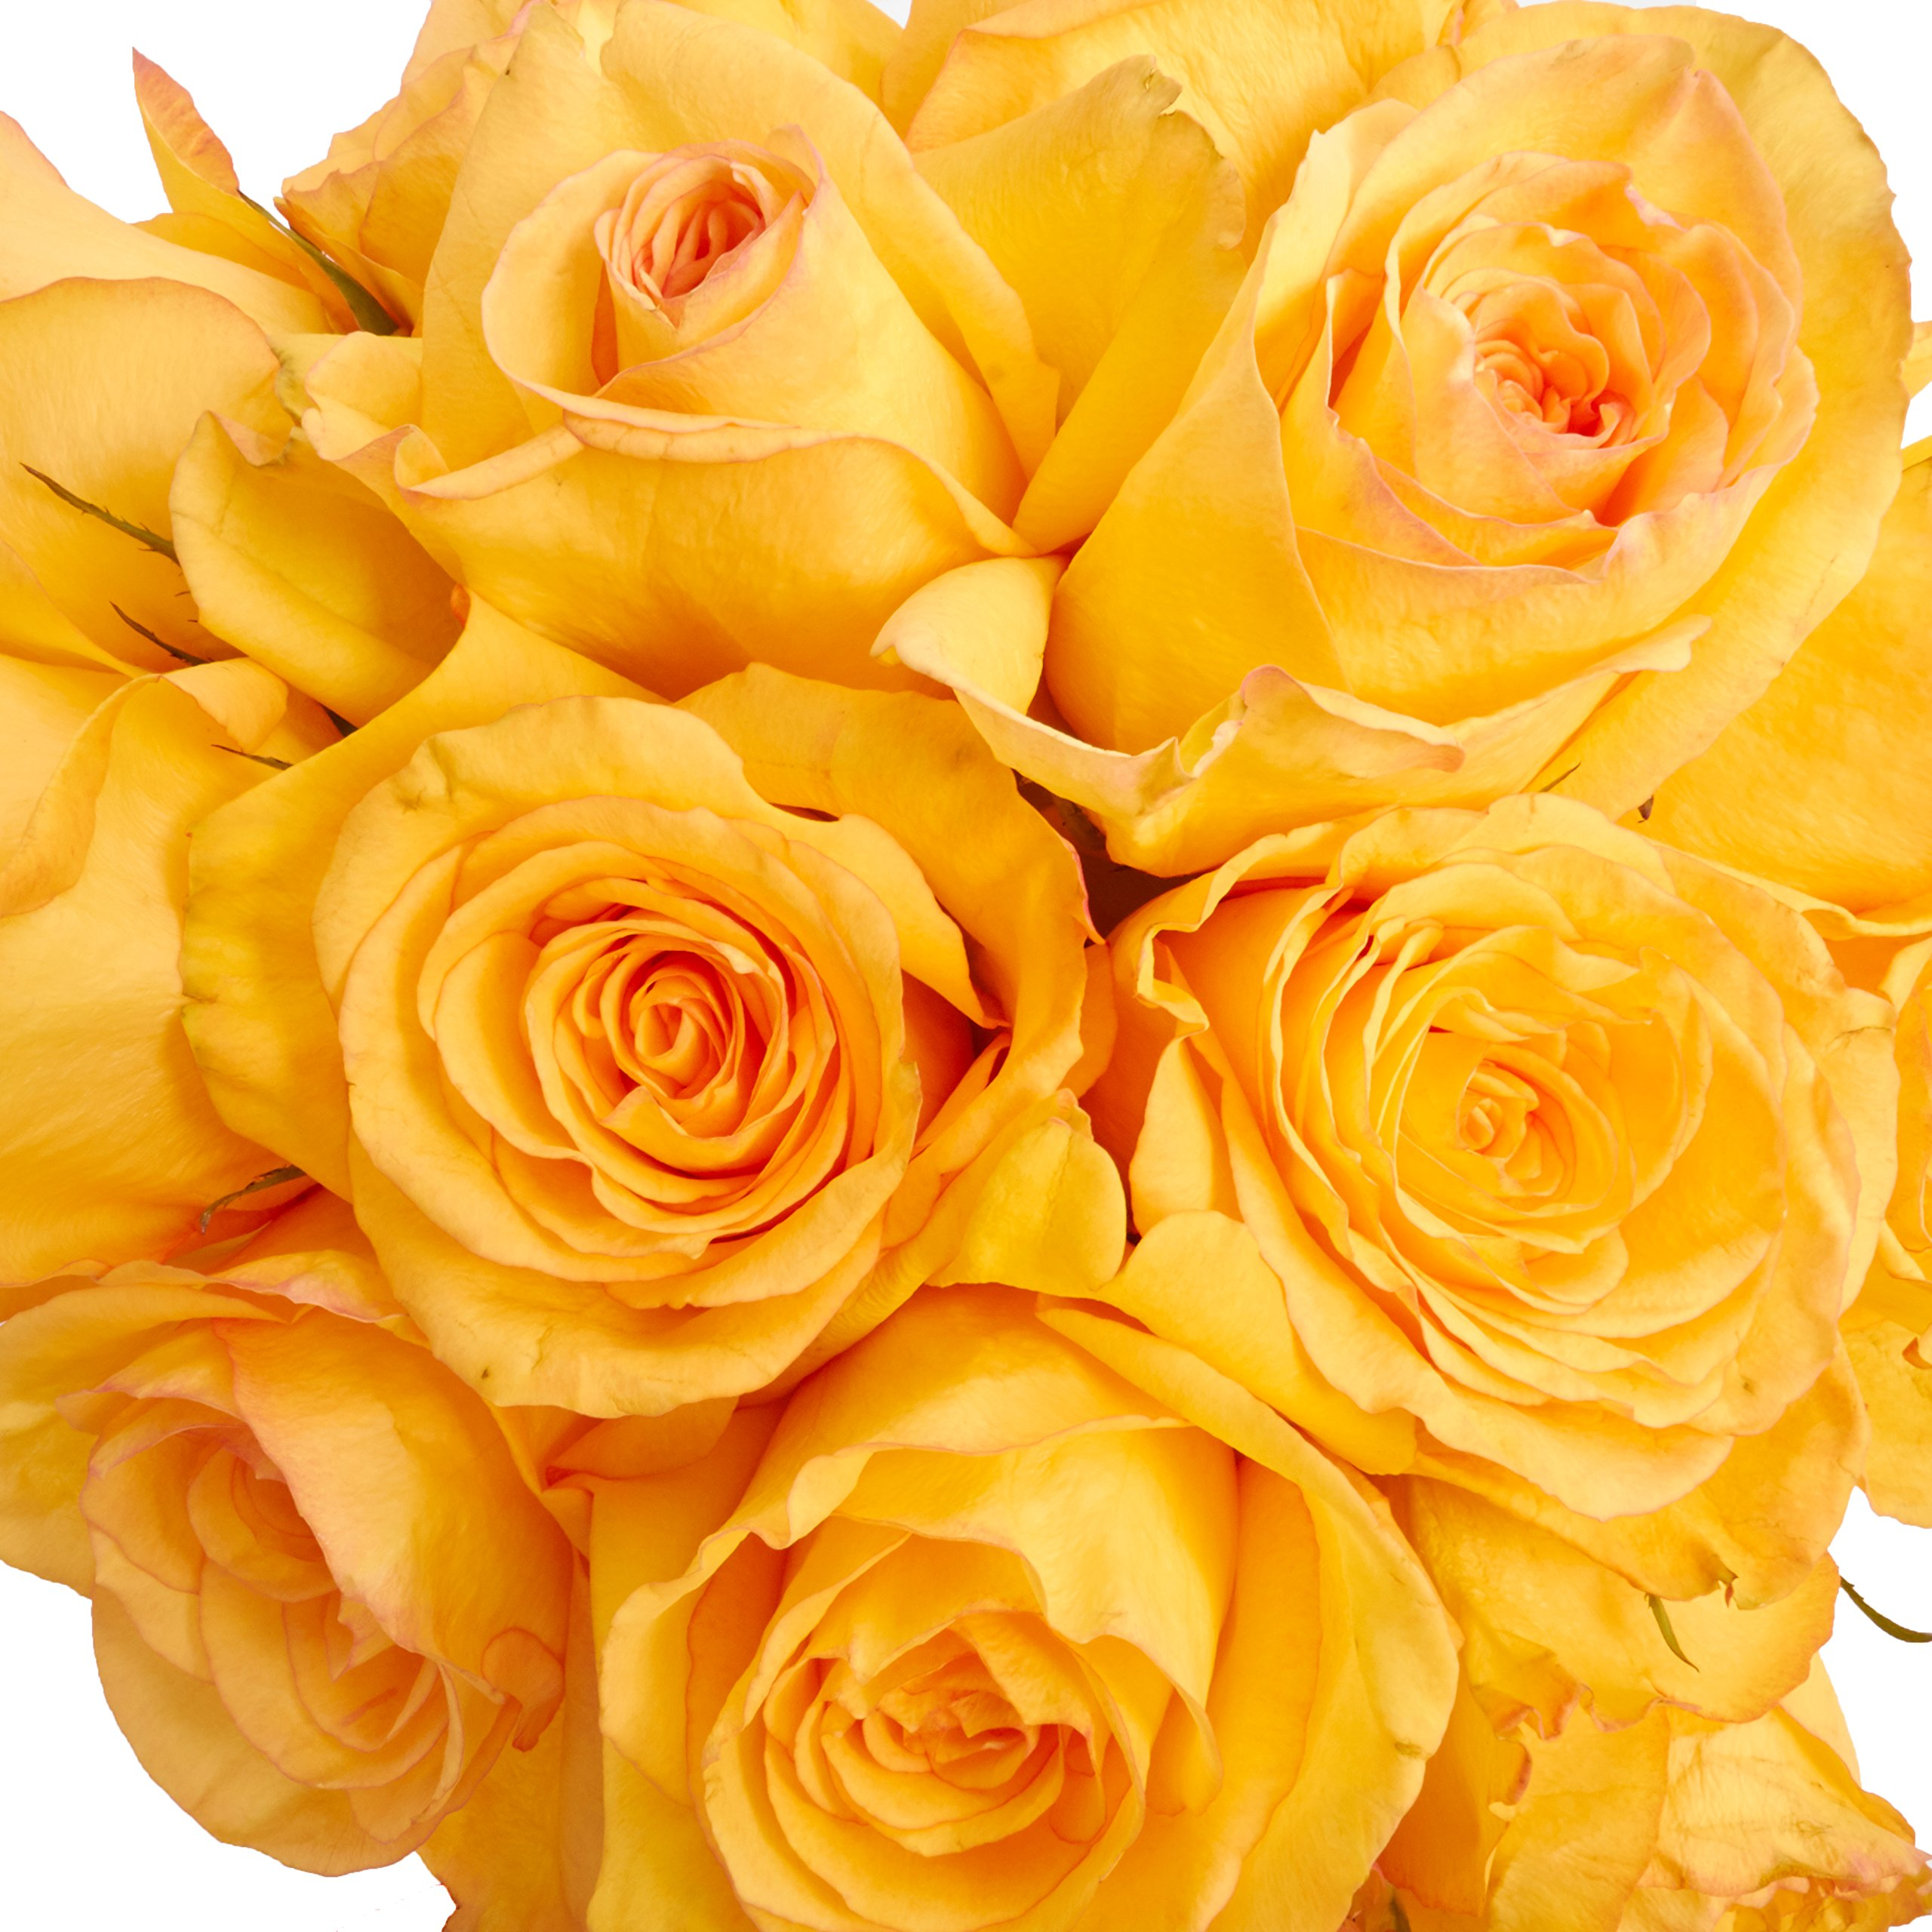 Flowers - One Dozen Yellow Roses (Free Vase Included) by From You Flowers